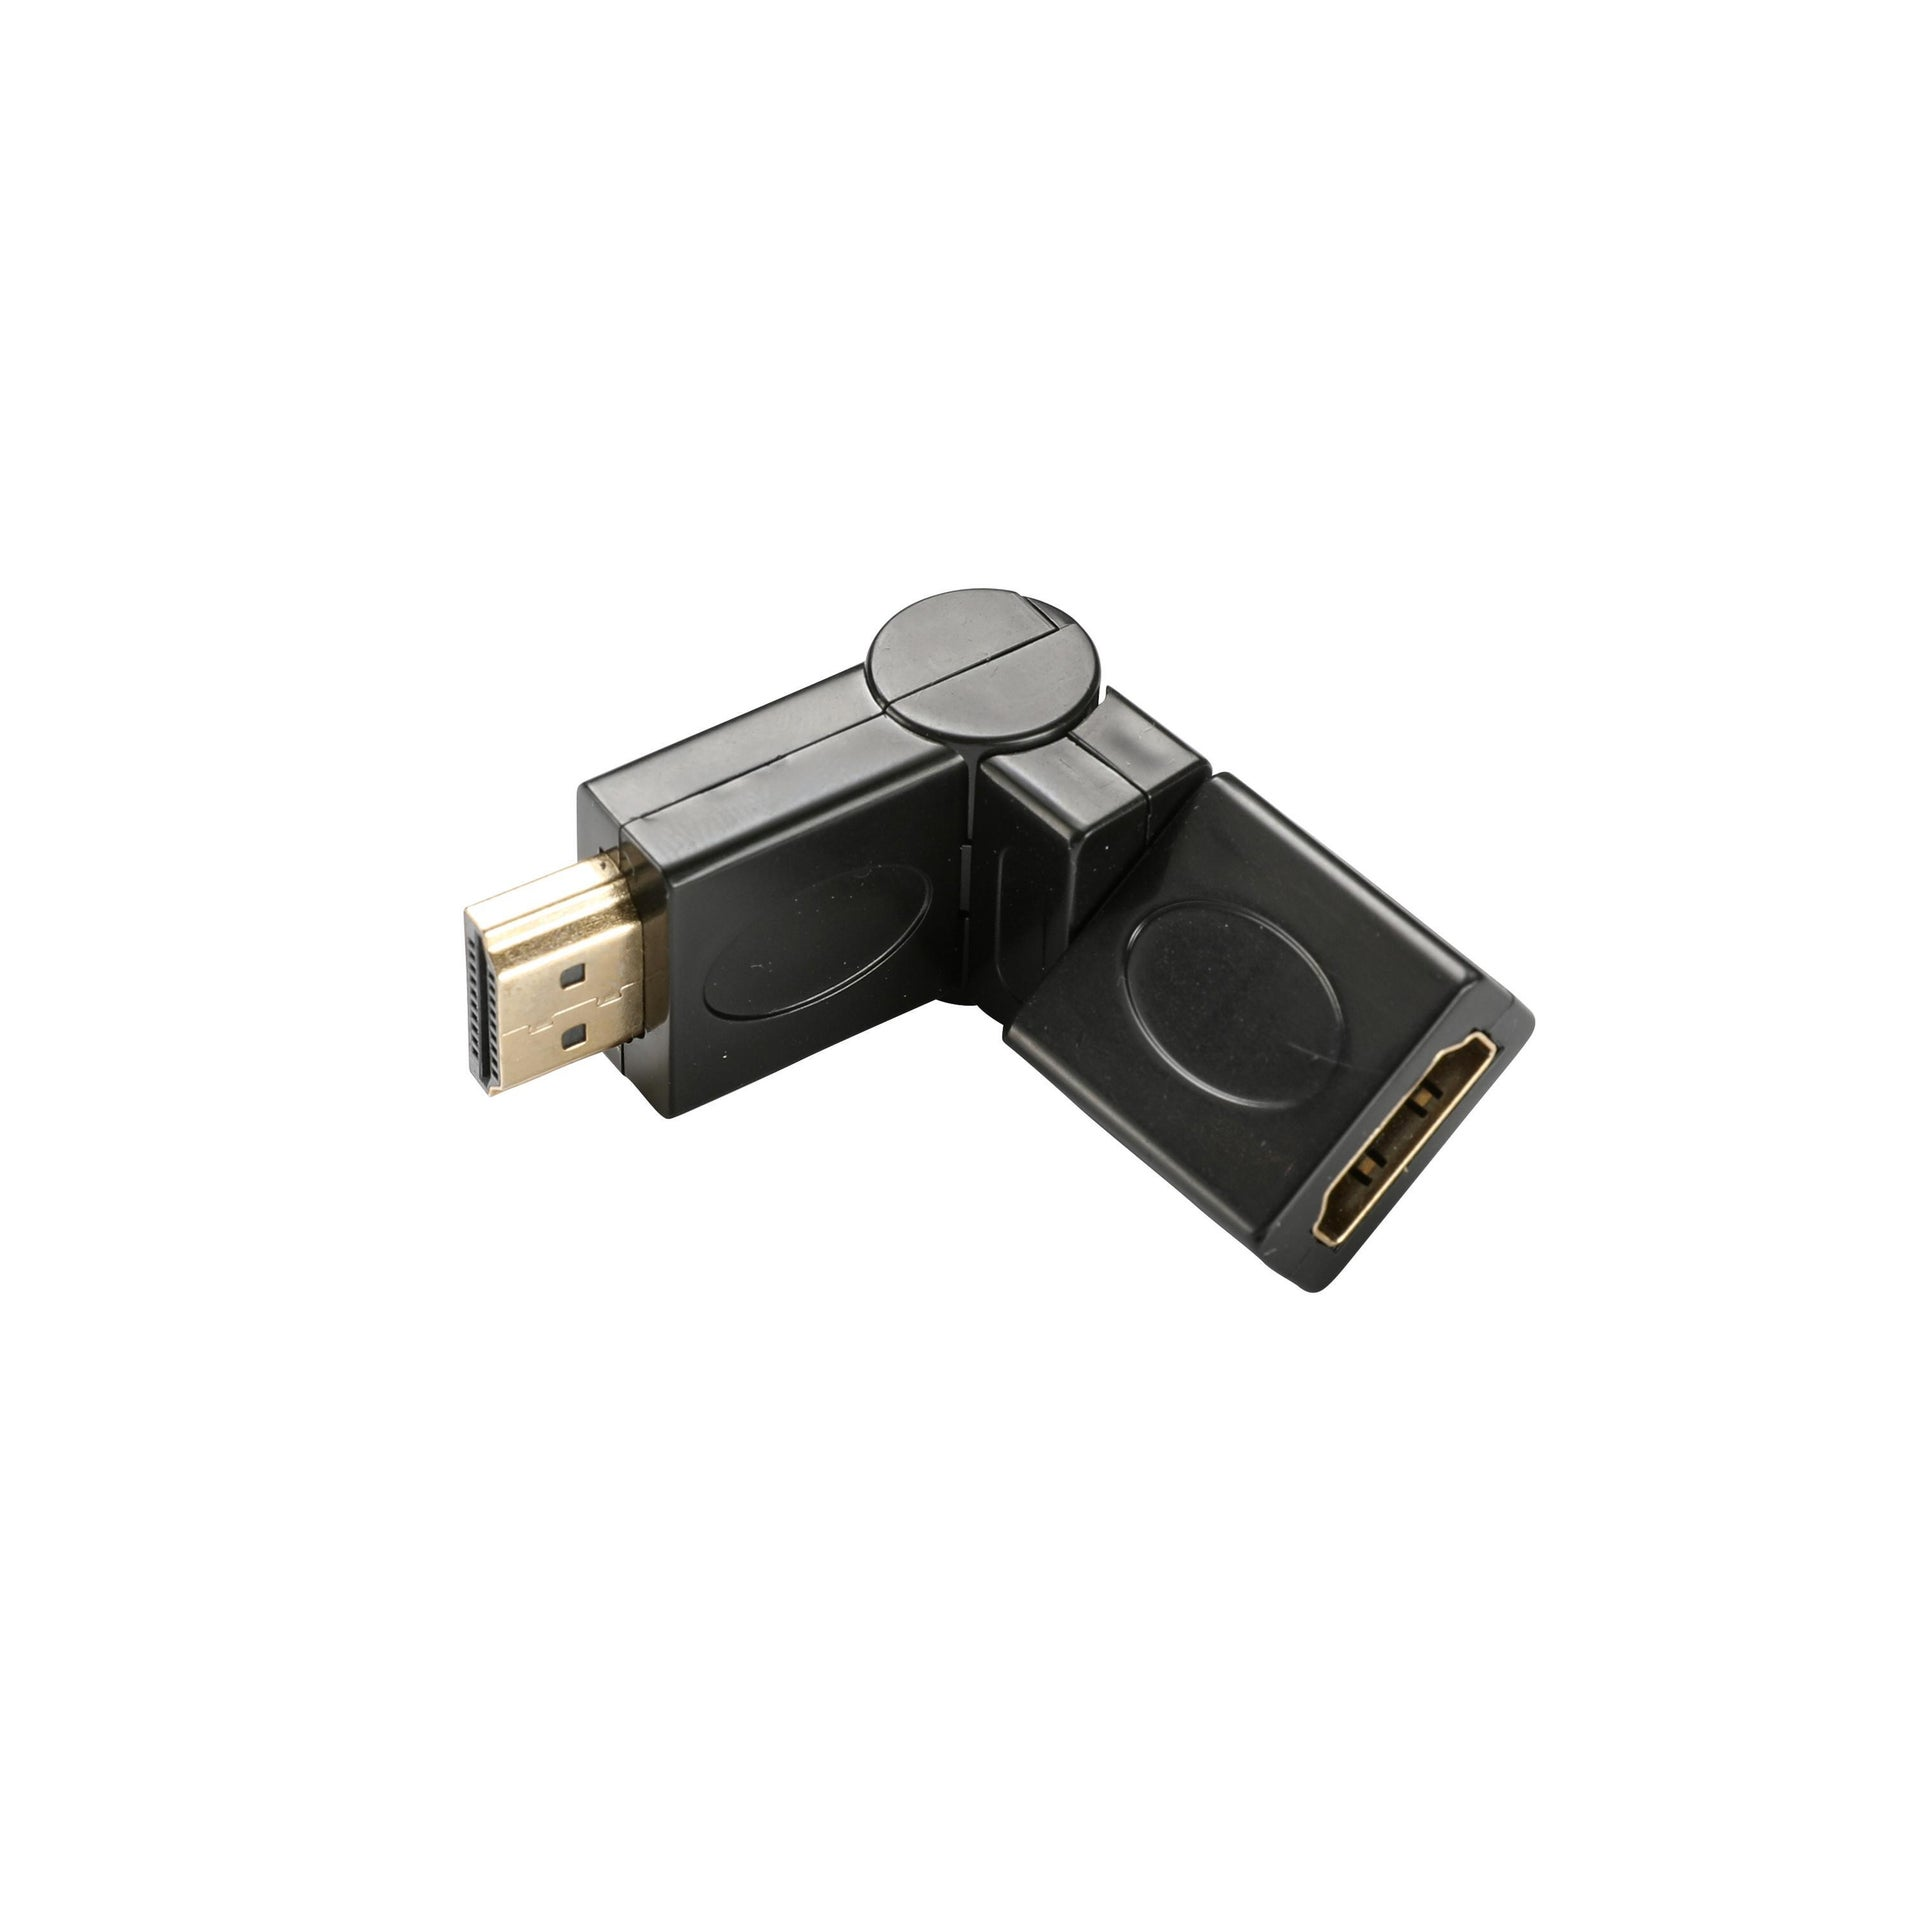 Adattatore HDMI uscita HDMI high speed EVOLOGY high speed - 2